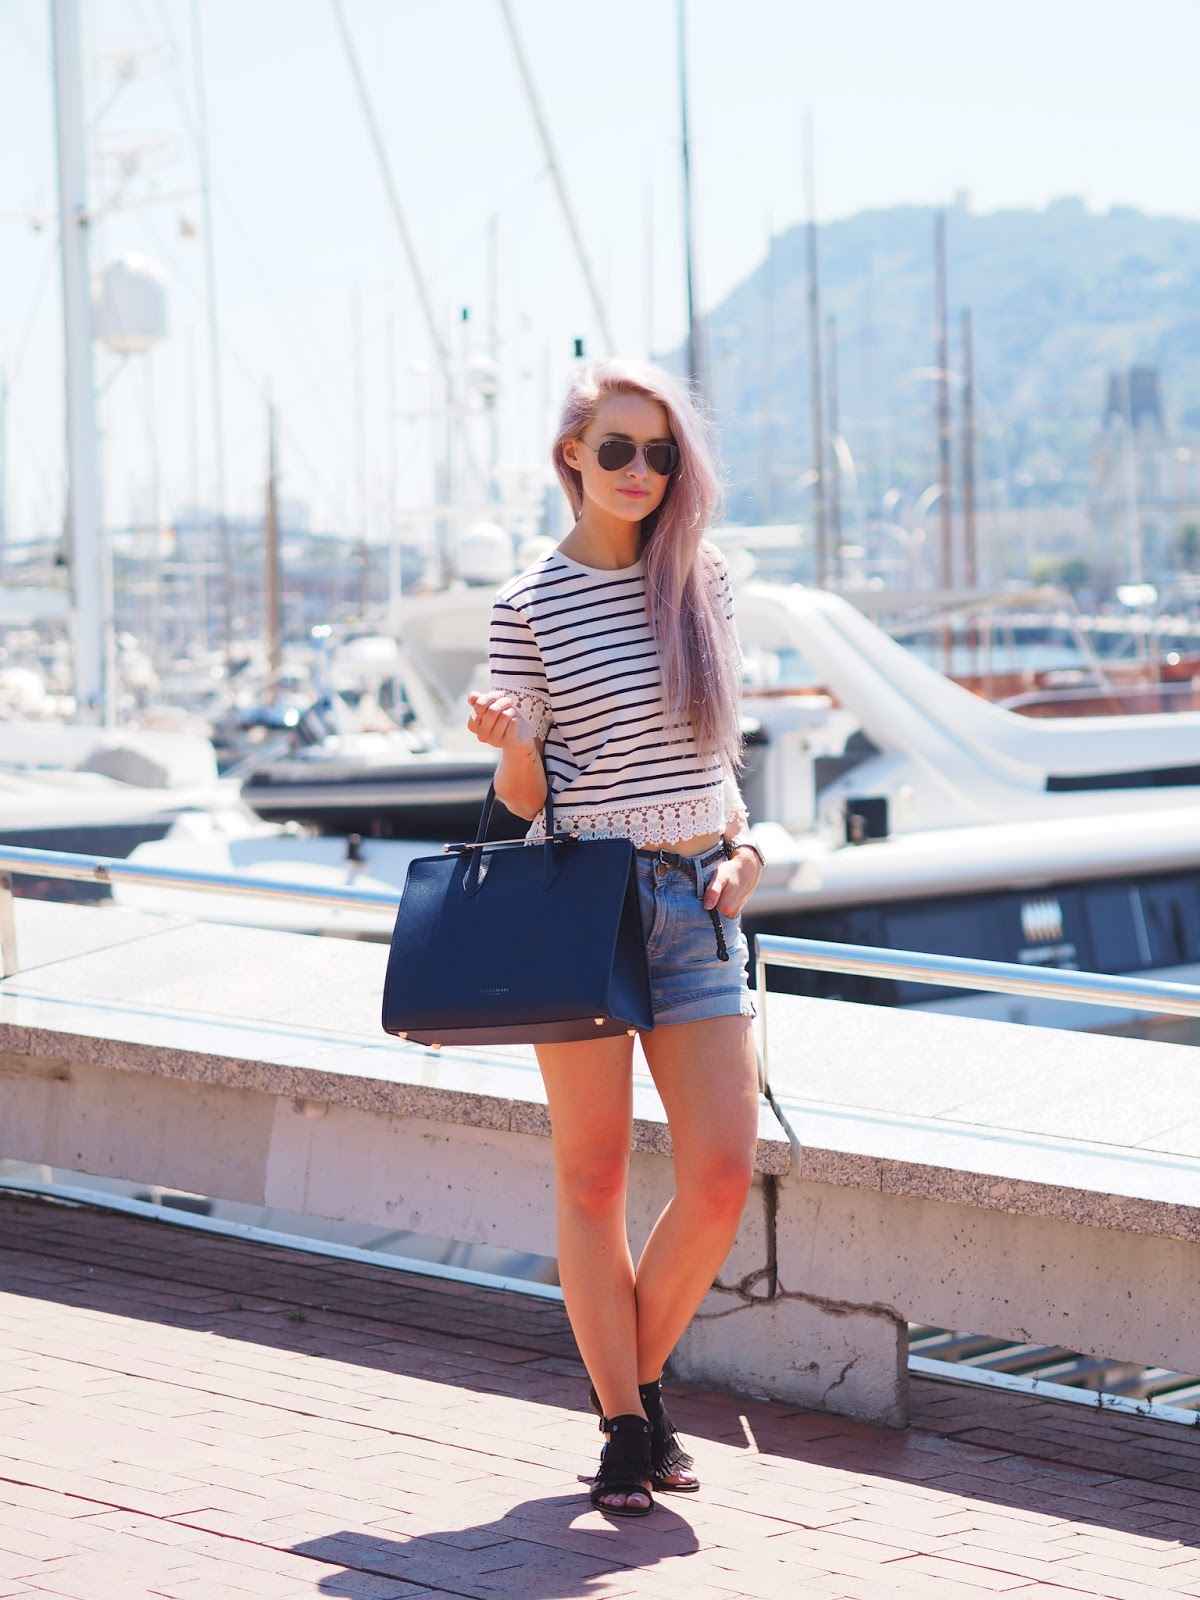 Wearing stripes, denim shorts and black tasseled sandals along the Barcelona Marina